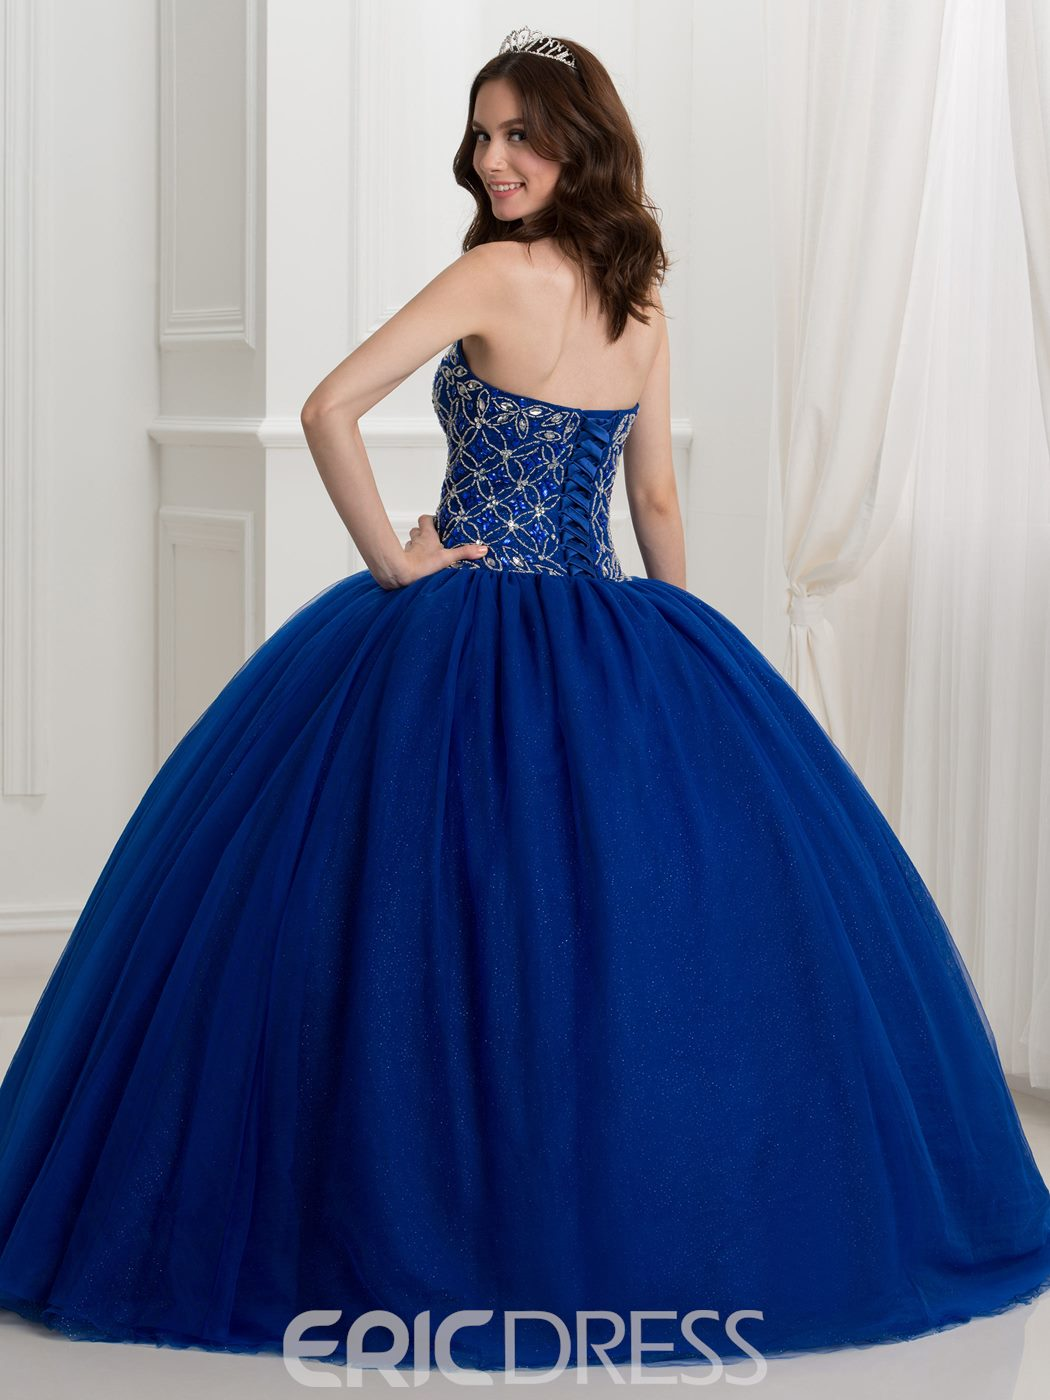 Ericdress Sweetheart Beaded Lace-Up Ball Gown Quinceanera Dress With Jacket